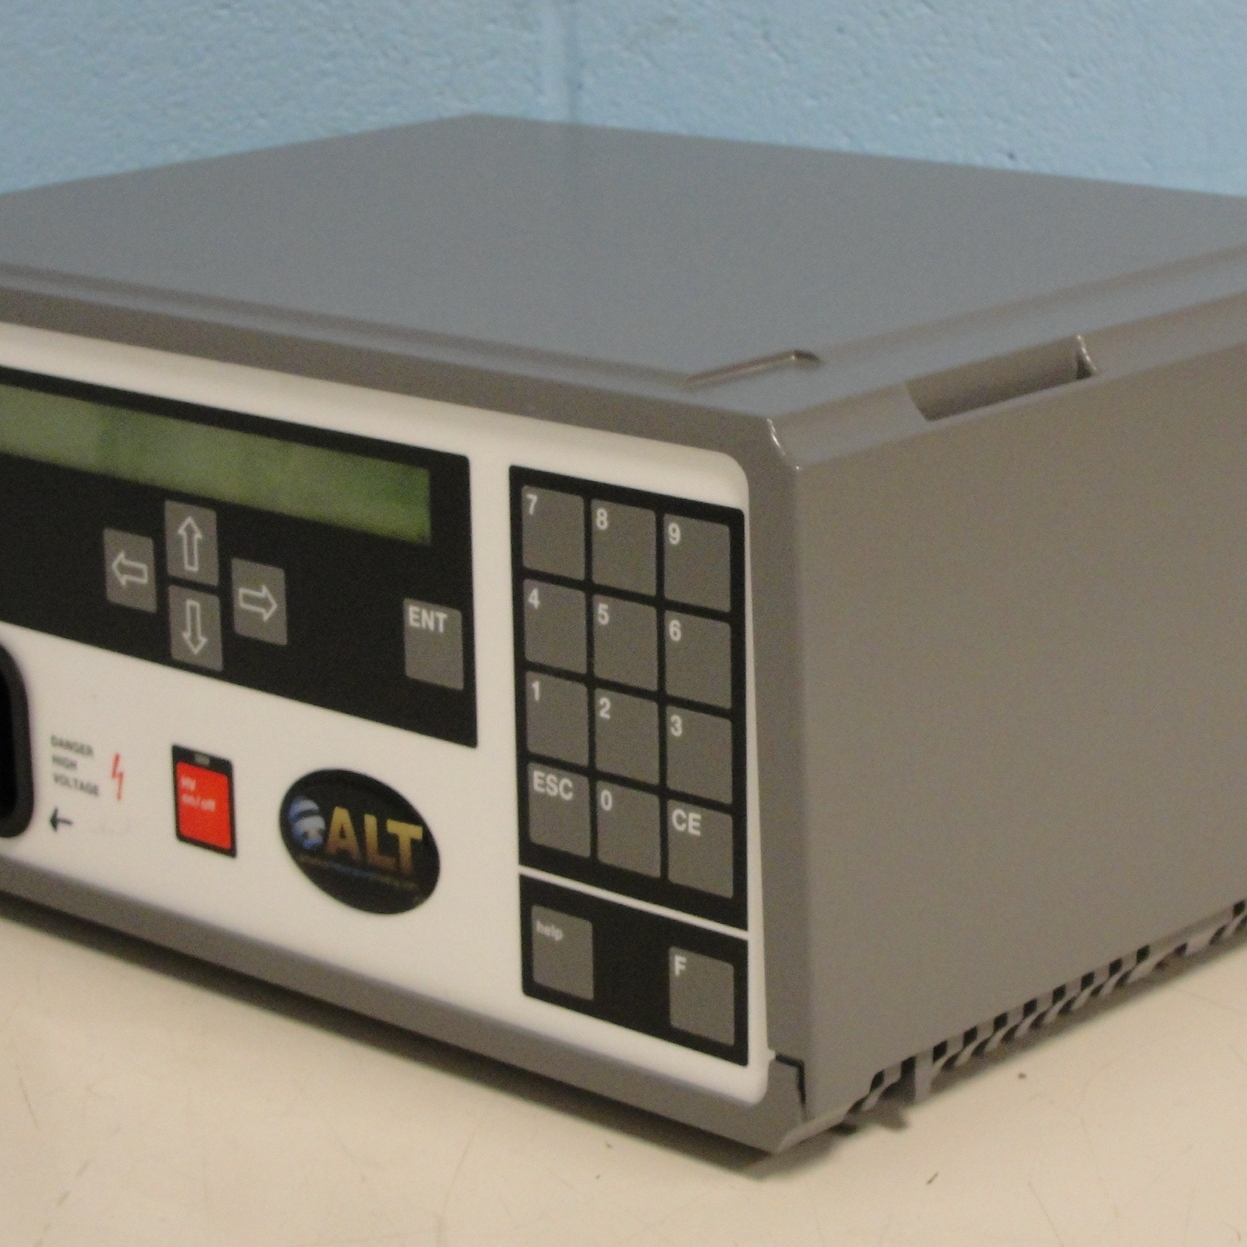 Pharmacia LKB Multidrive XL Electrophoresis Programmable Power Supply Image